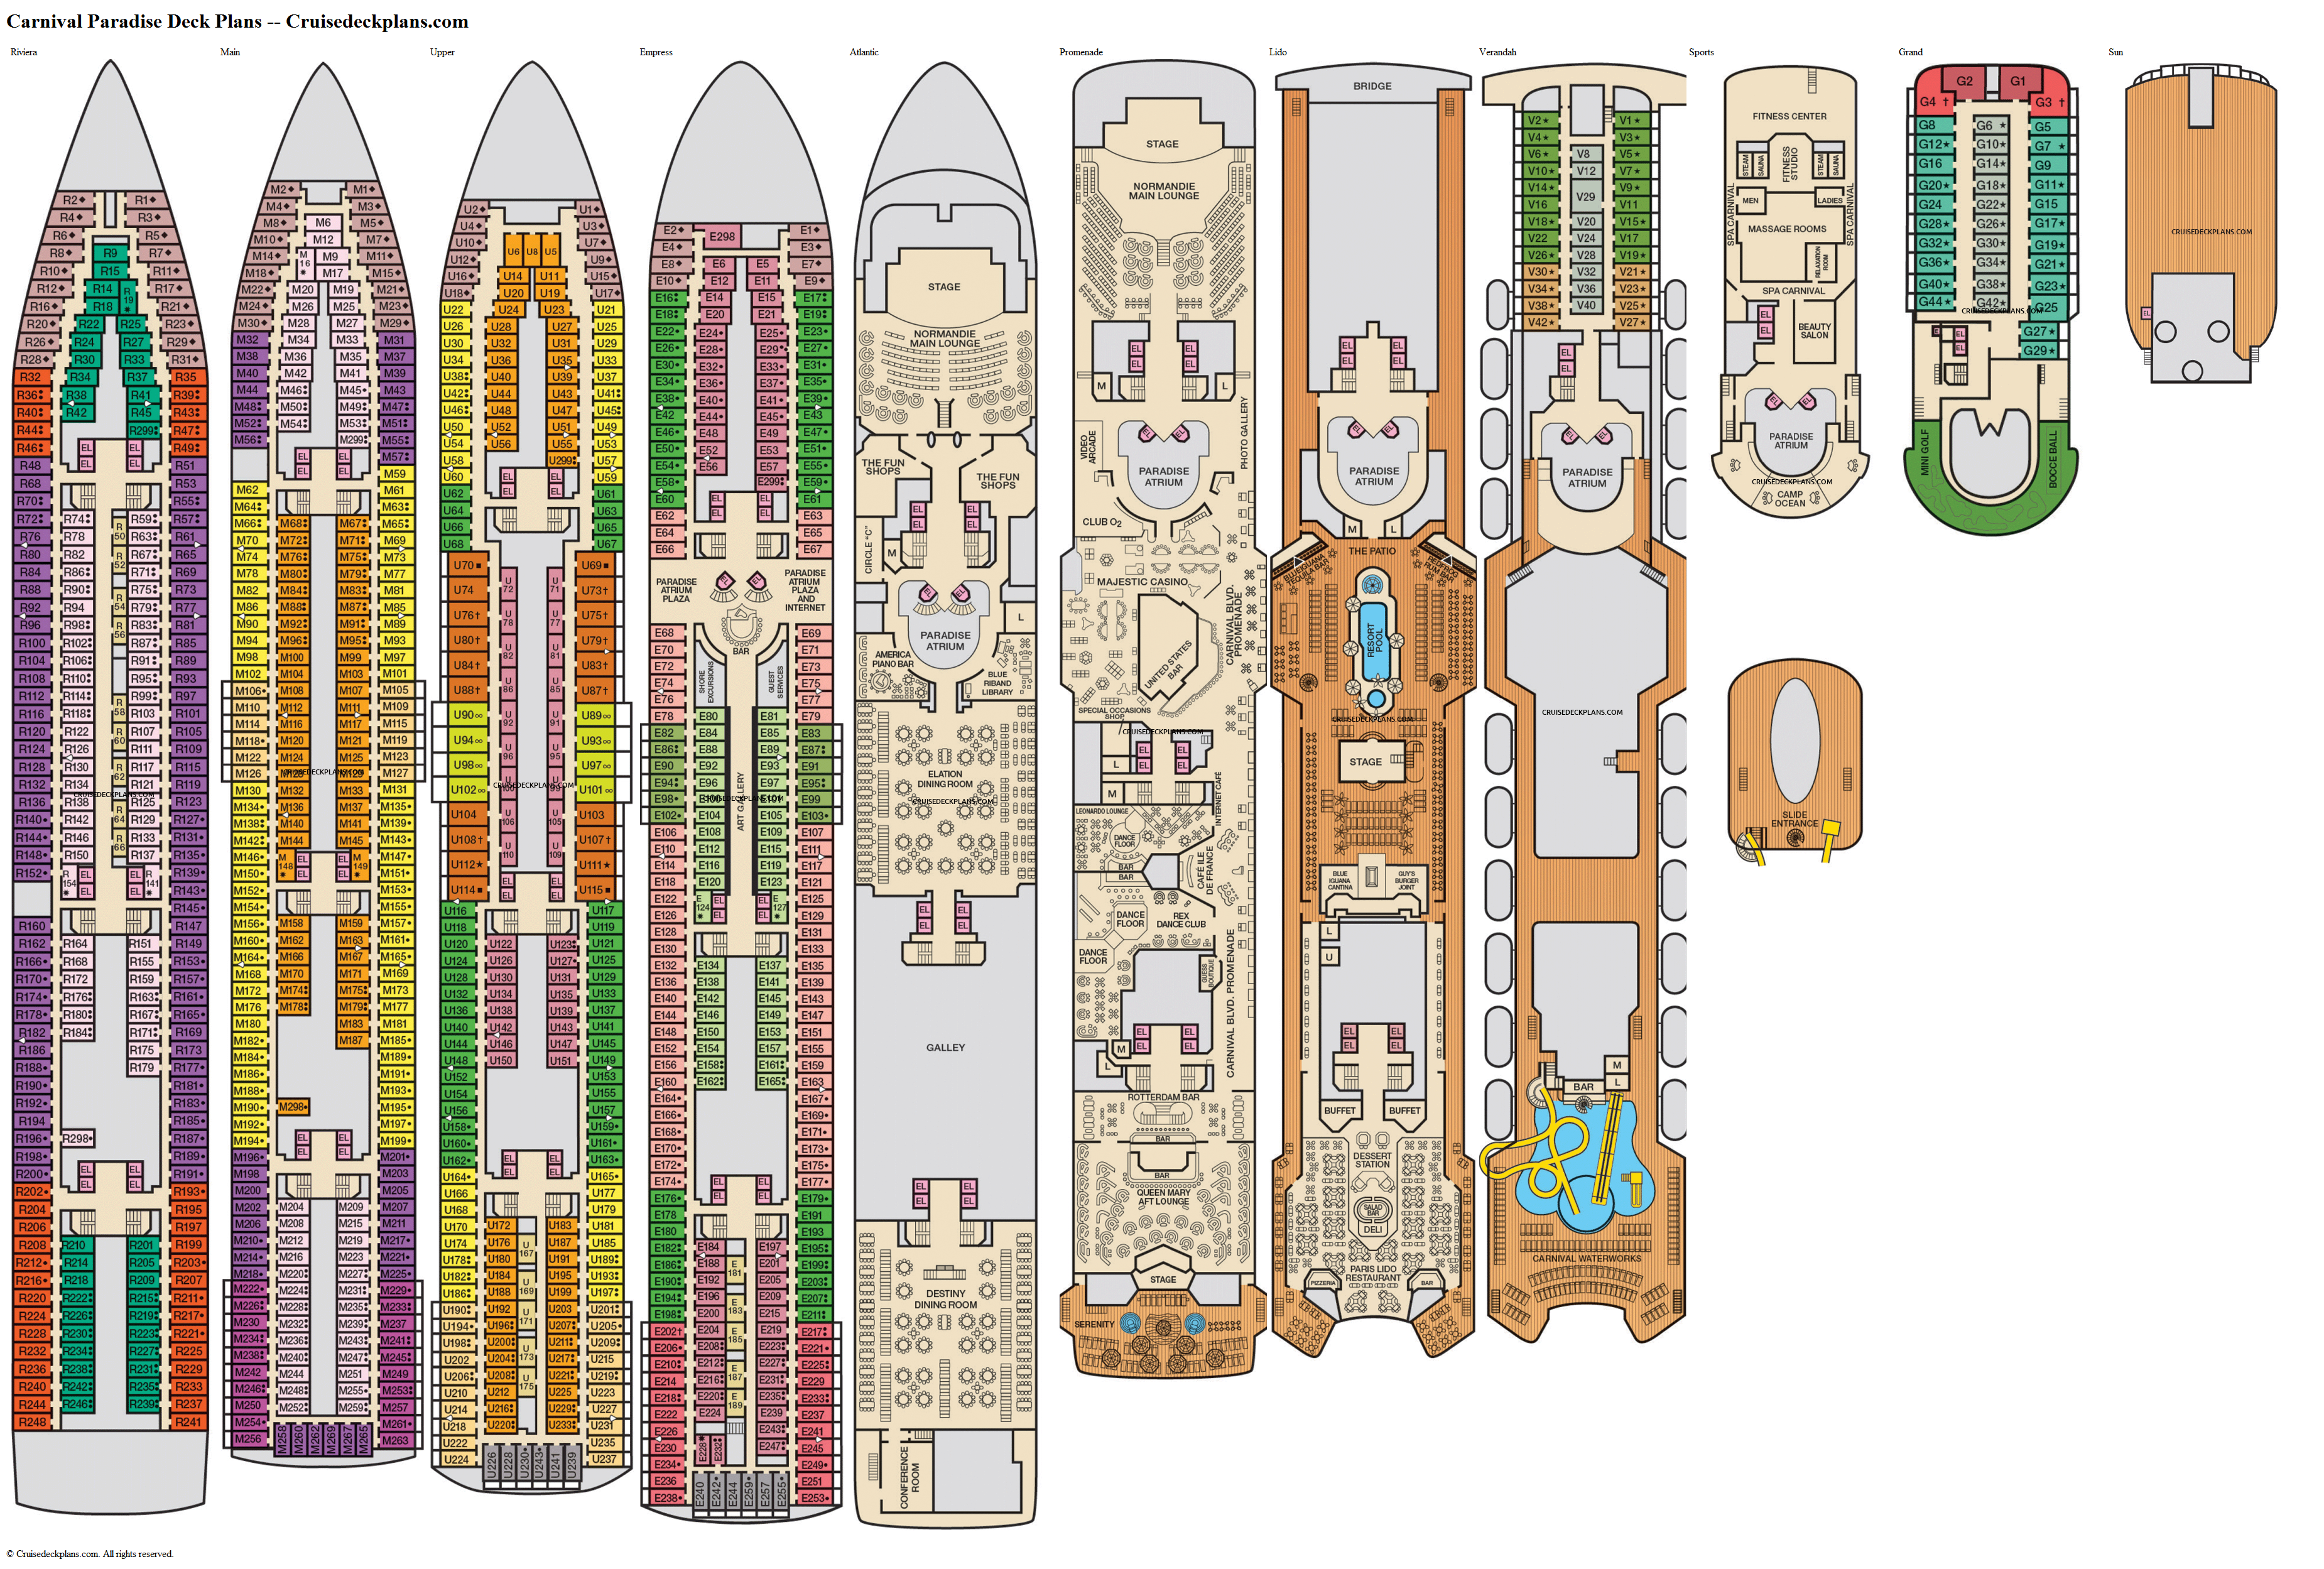 Carnival Paradise Deck Plans, Diagrams, Pictures, Video on